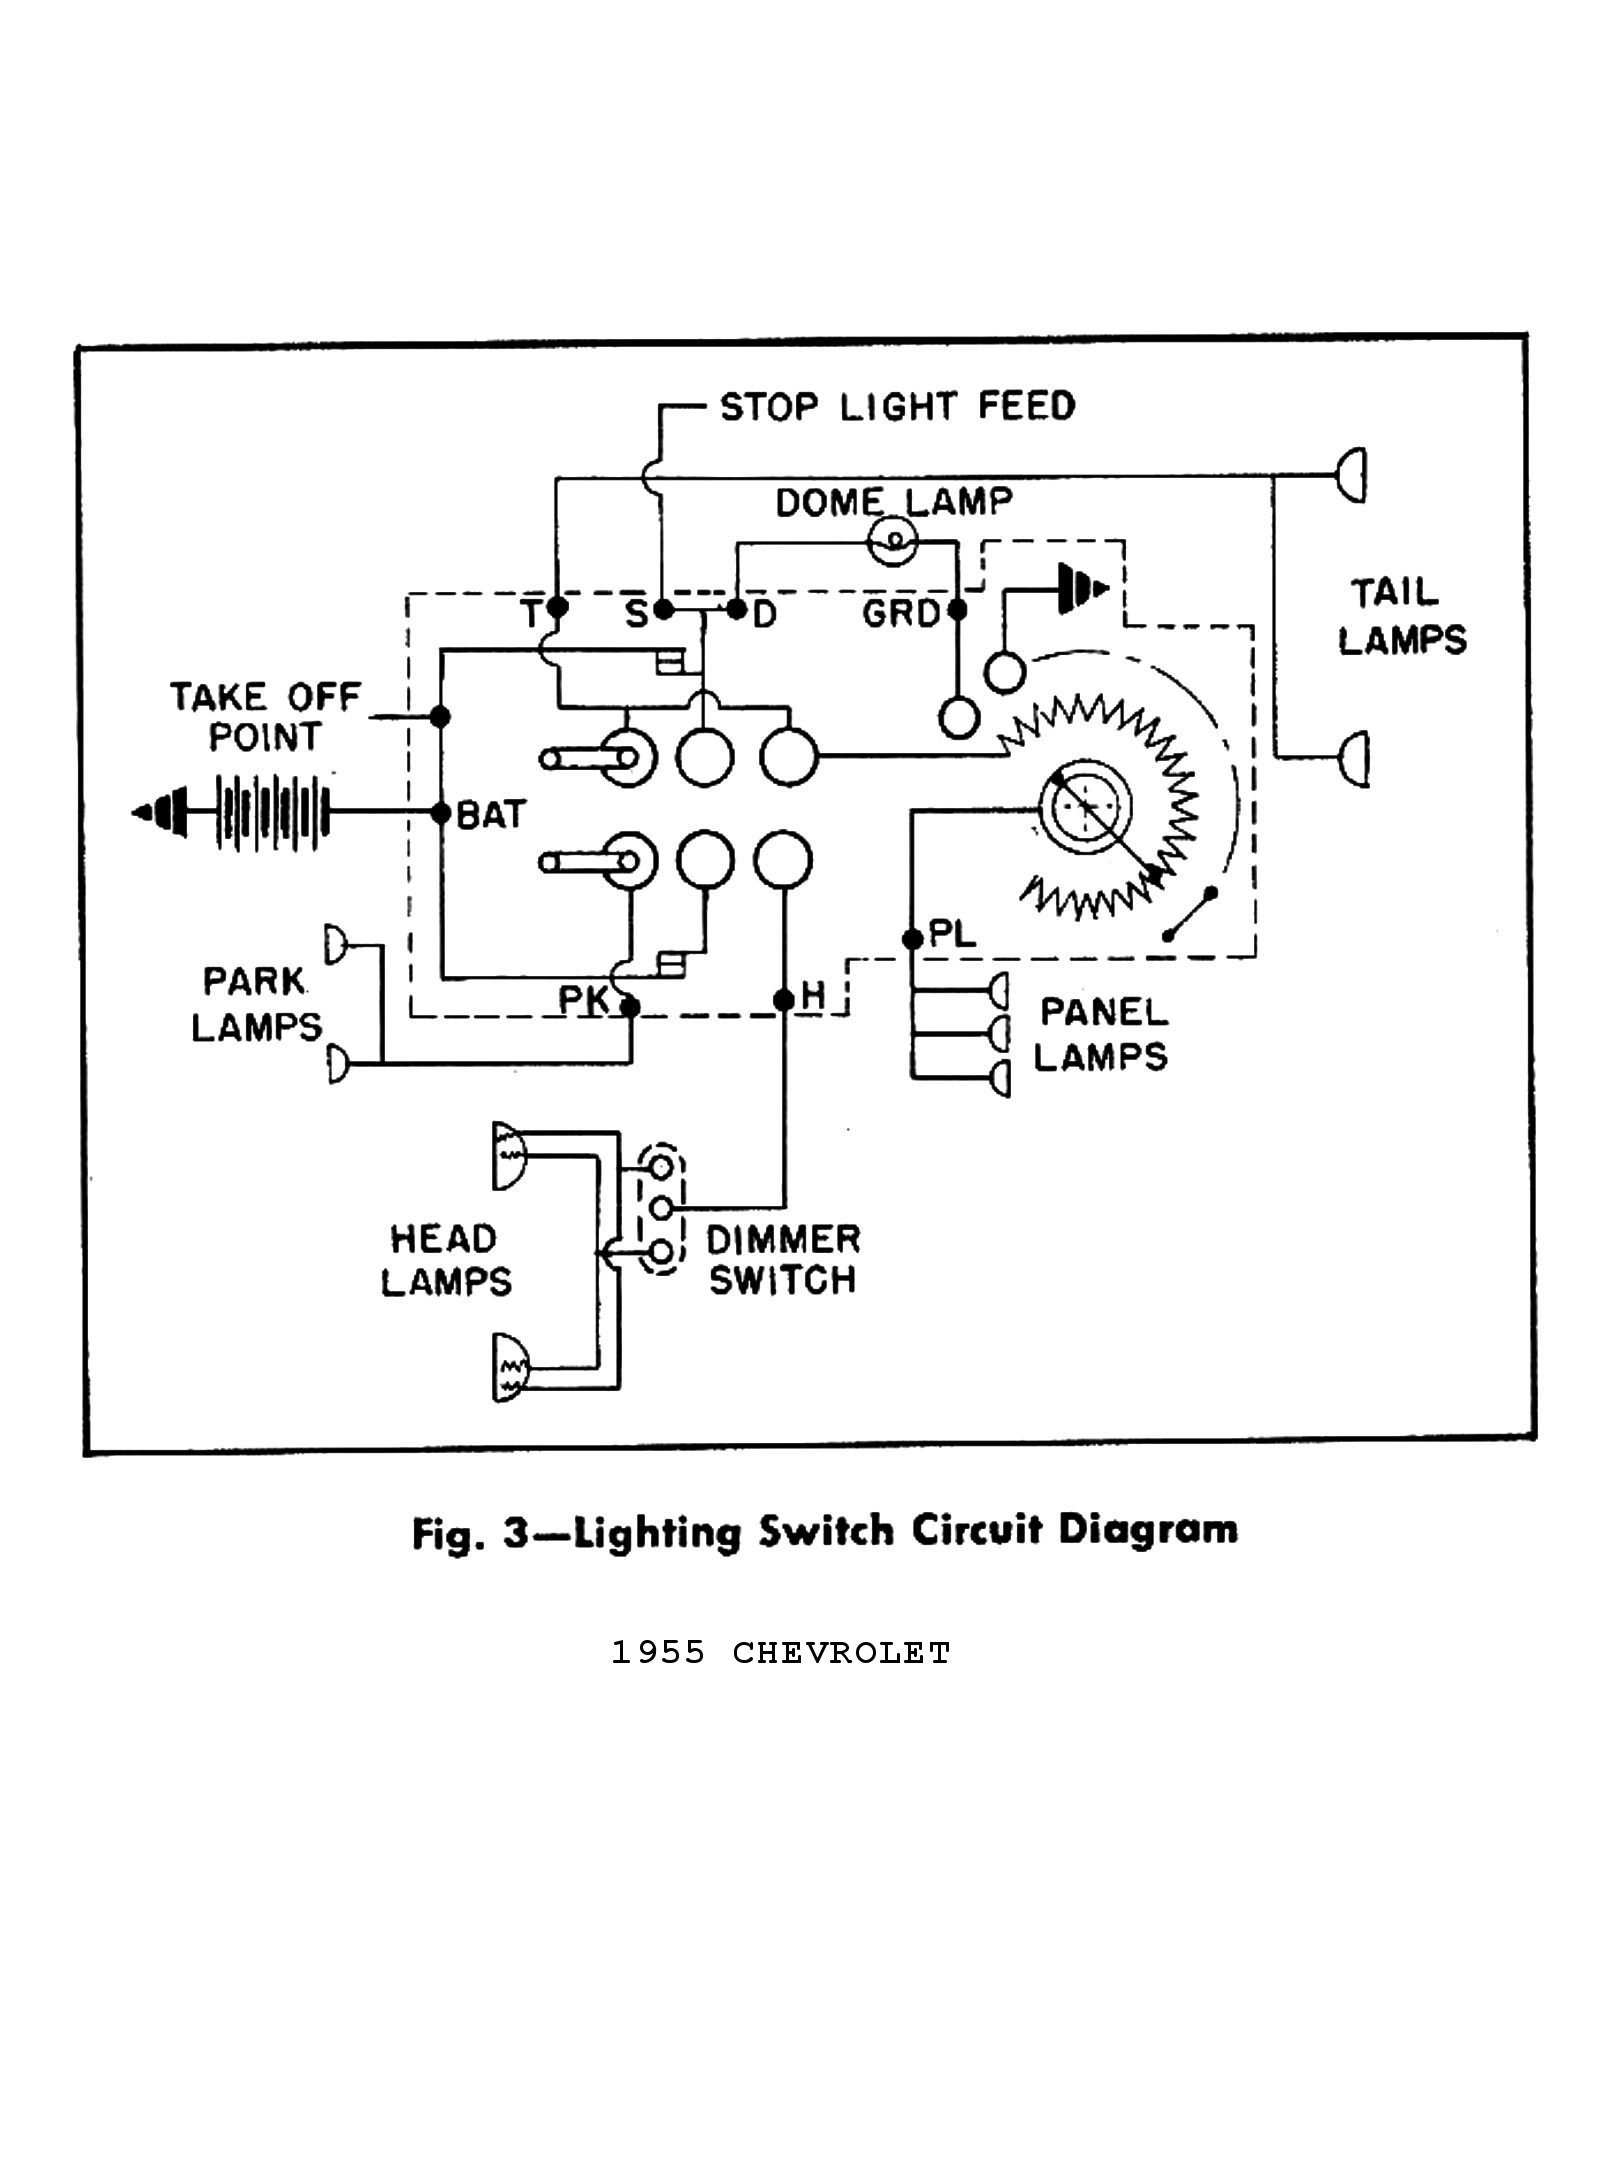 1946 Gauge Wiring Diagram Ask Answer Dodge Ram Alternator Chief Amp Library Rh 85 Codingcommunity De 1st Gen Cummins